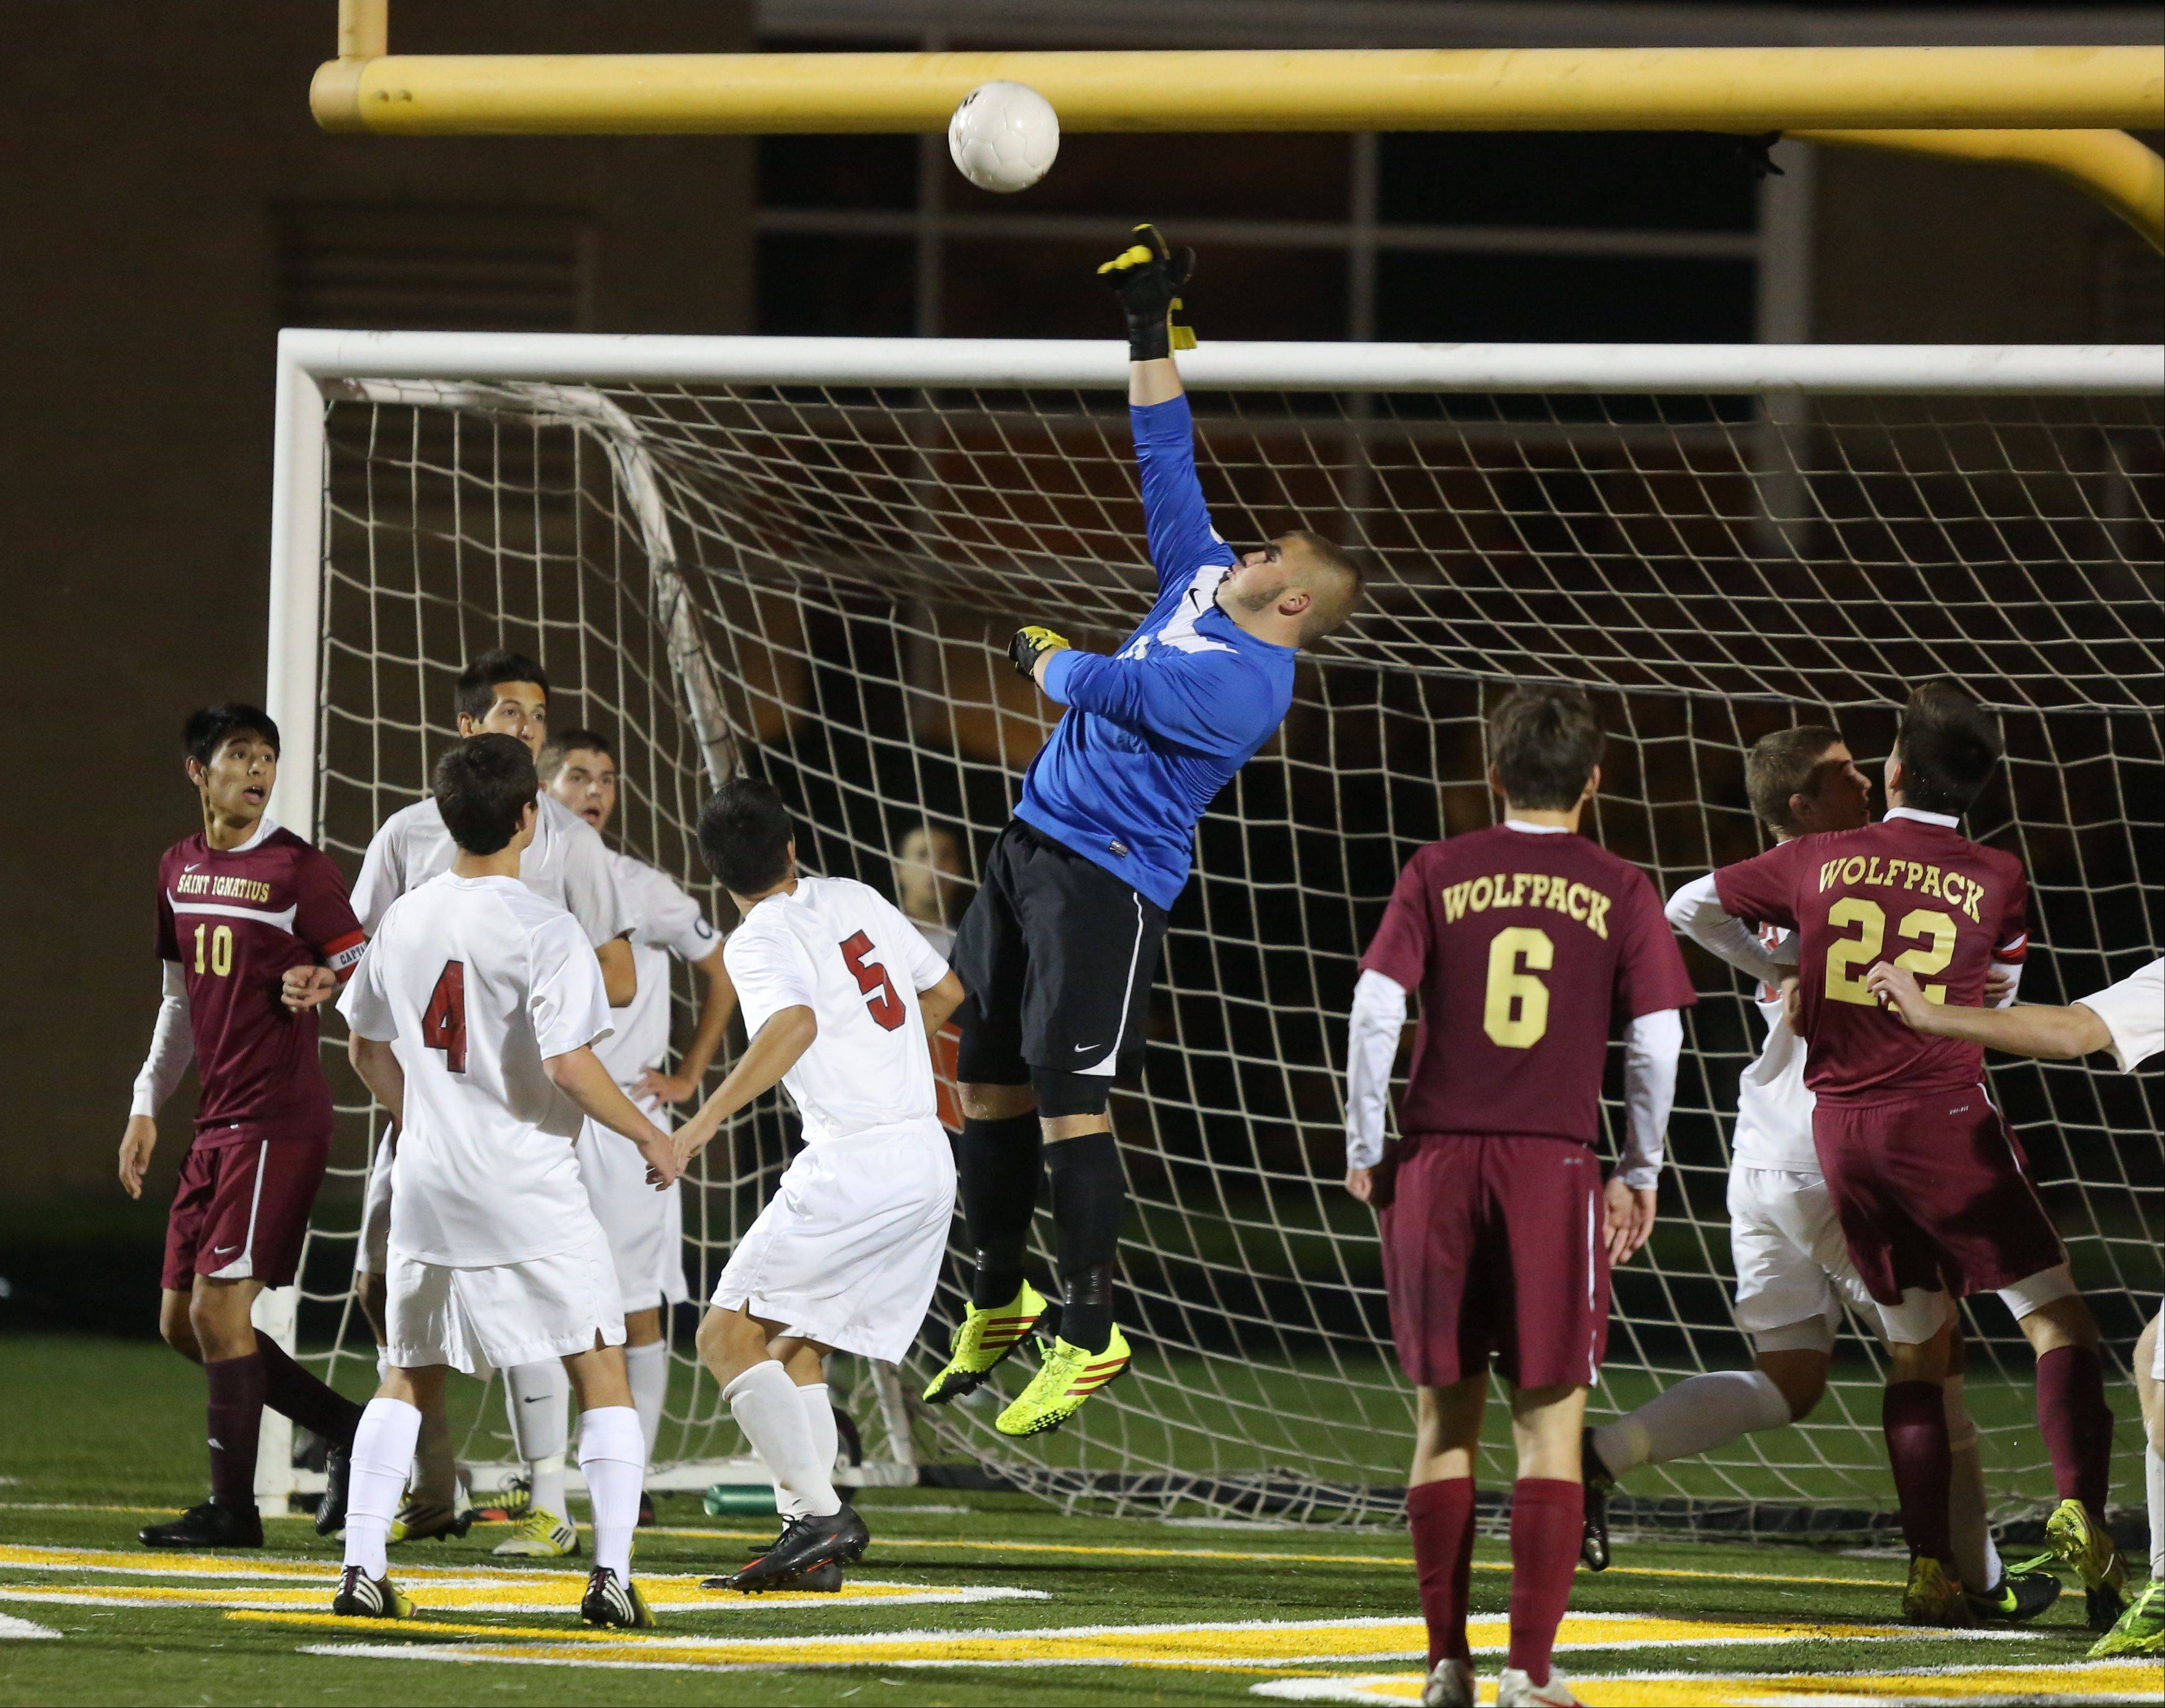 Antioch goalie Tommy Tritschler goes up high to make a save during Class 2A supersectional play against St. Ignatius on Tuesday night at Stevenson.